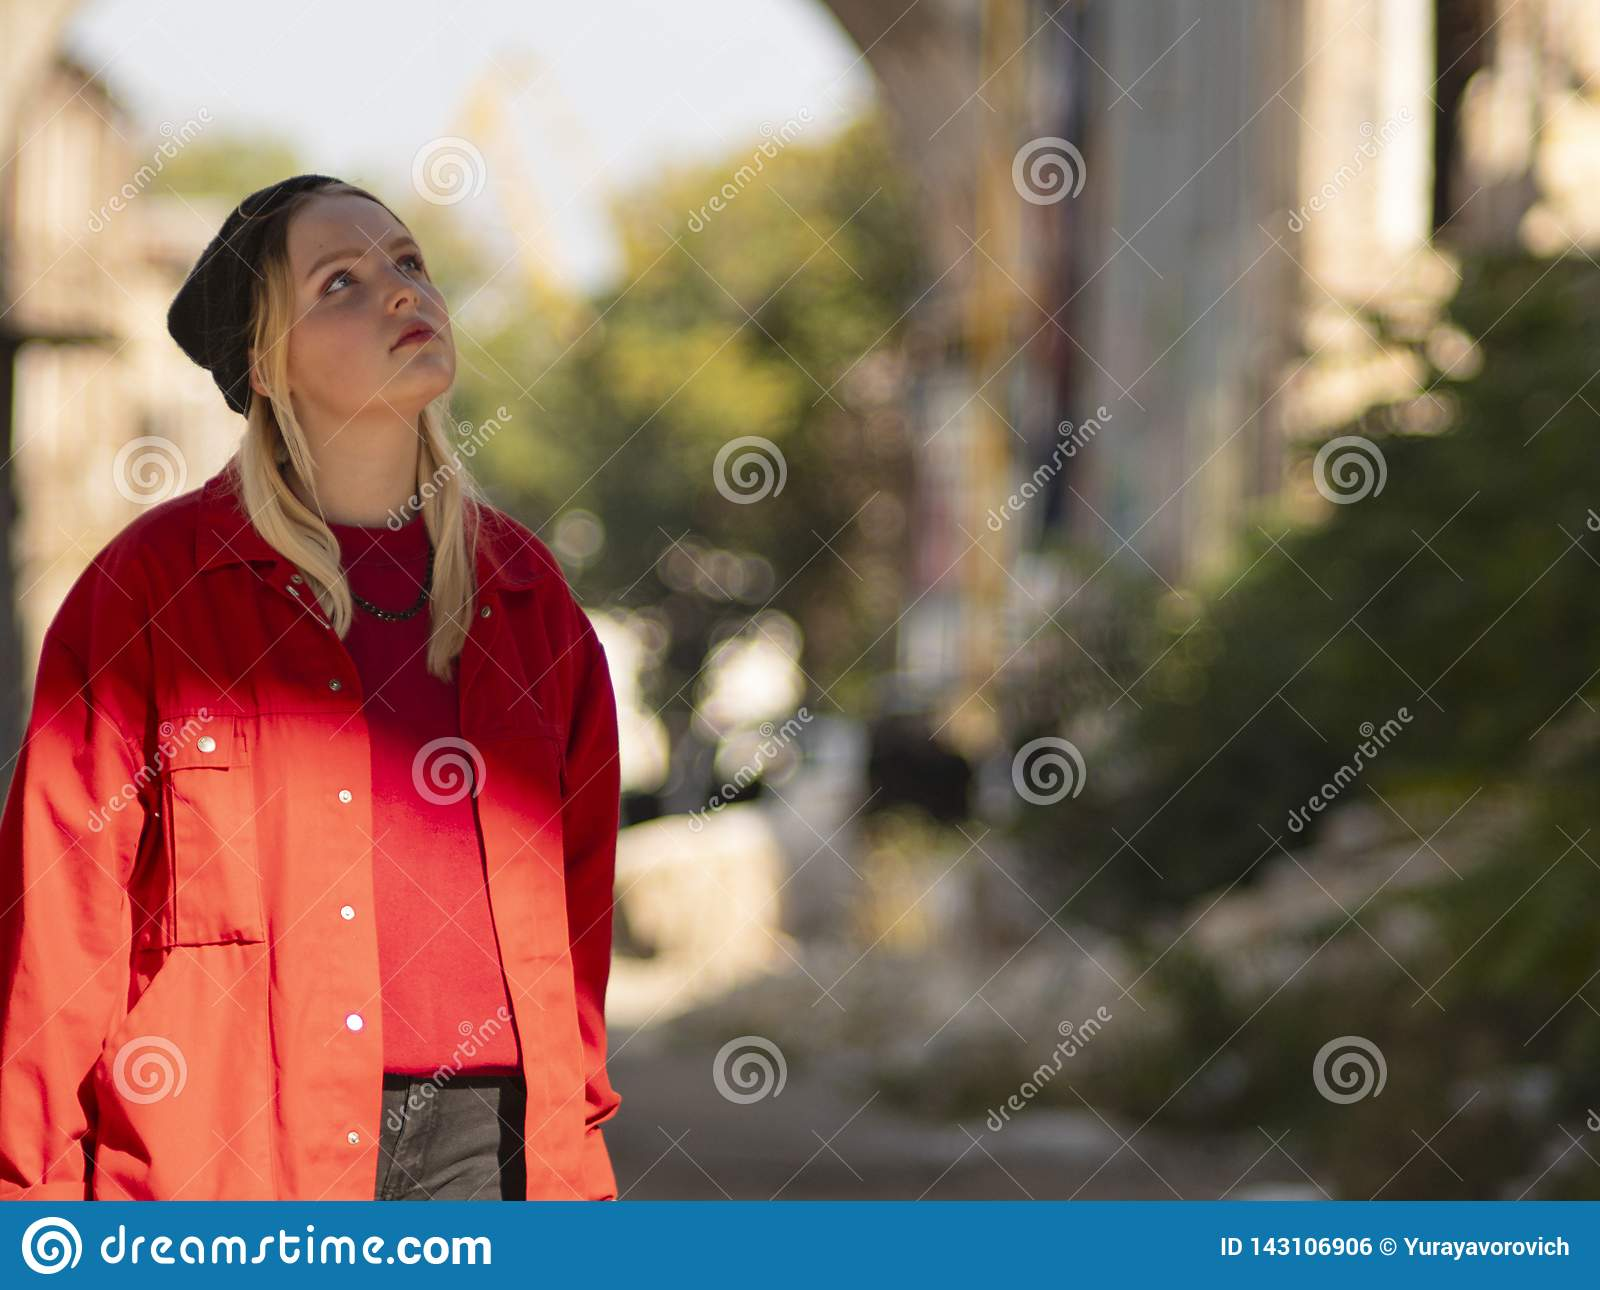 Attractive young female blonde teenager in a red jacket standing on the street